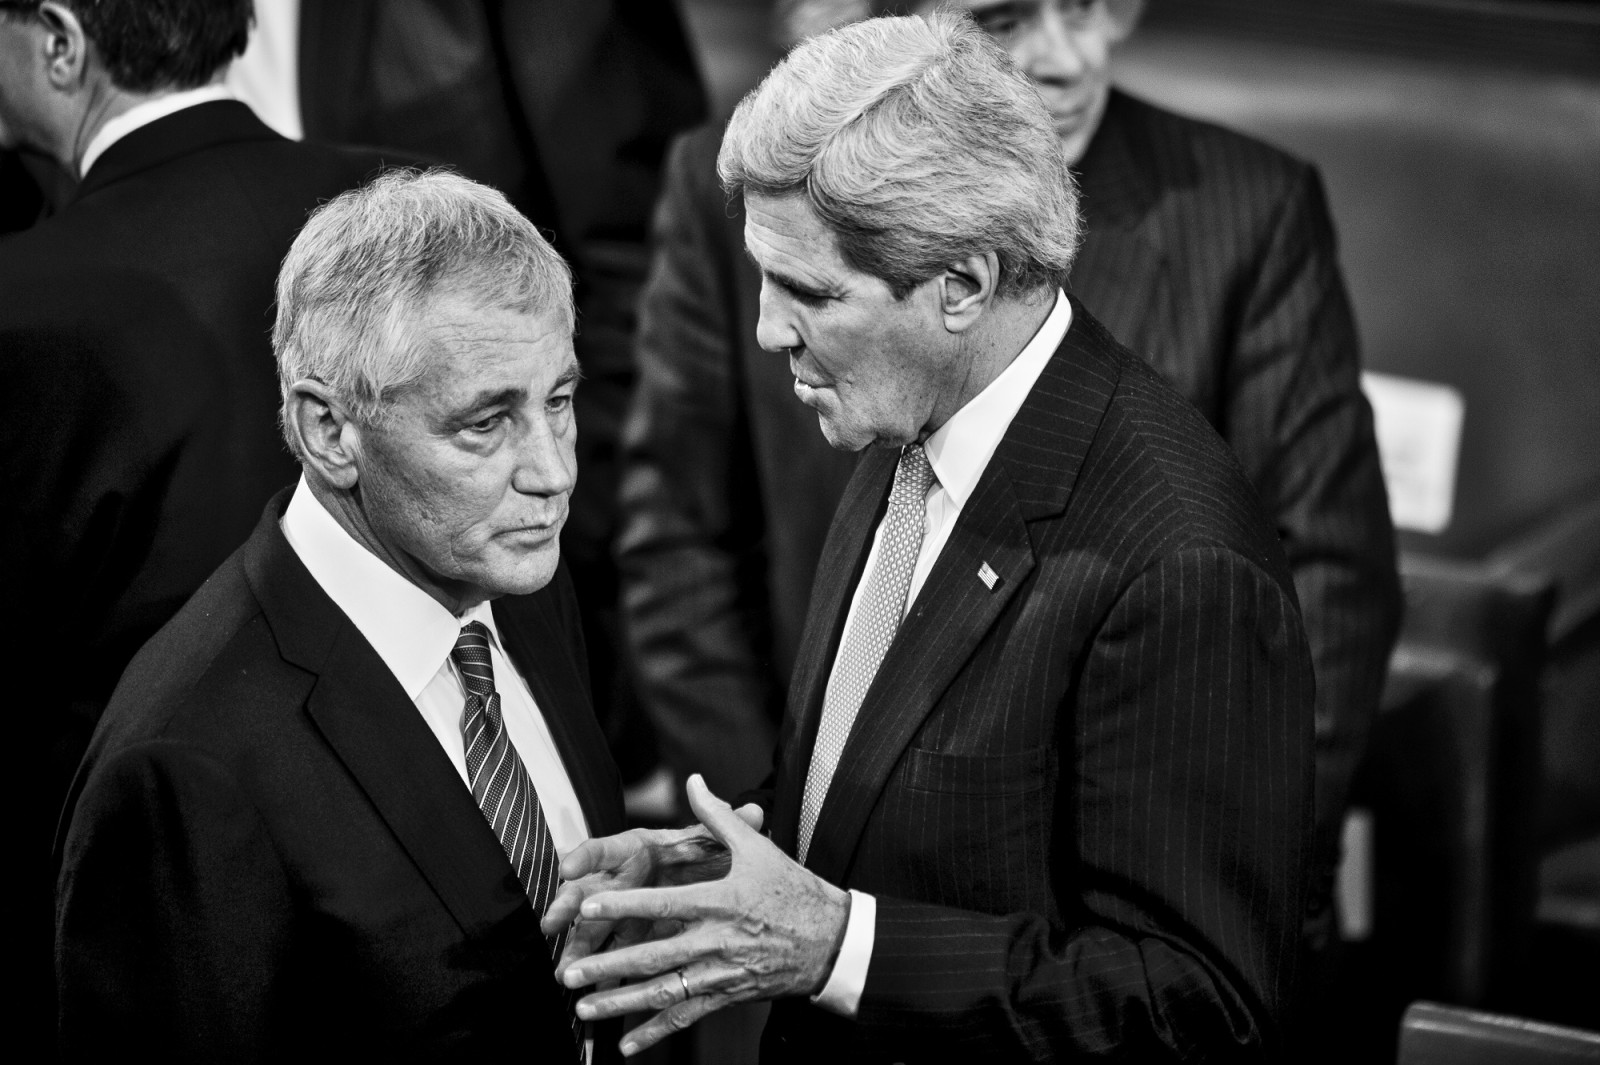 Secretary of Defense Chuck Hagel and Secretary of State John Kerry confer on the House floor before U.S. President Barack Obama delivers the State of the Union address to a joint session of Congress at the Capitol in Washington, District of Columbia, U.S., on Tuesday, Jan. 20, 2015.